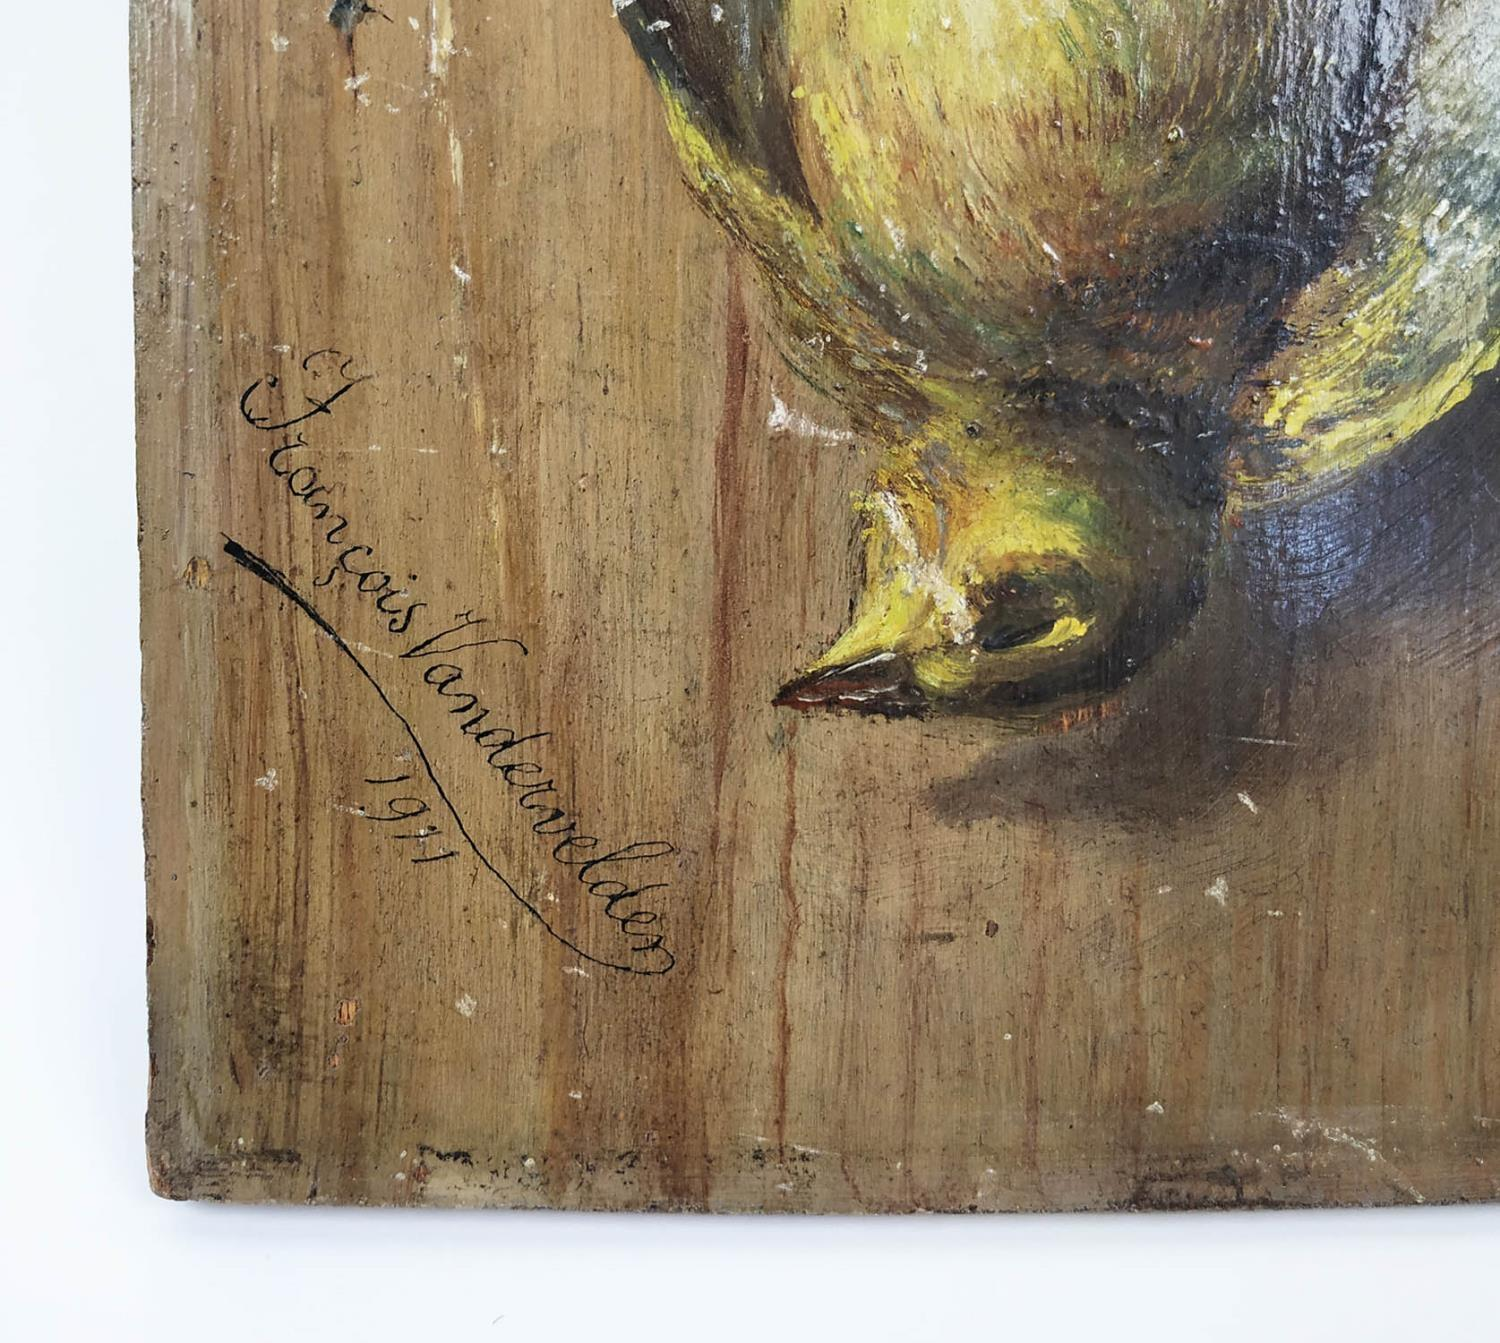 DUTCH/FLEMISH SCHOOL TROMPE L'OEIL, oil on panel, study of hanging birds, signed and dated - Image 3 of 4